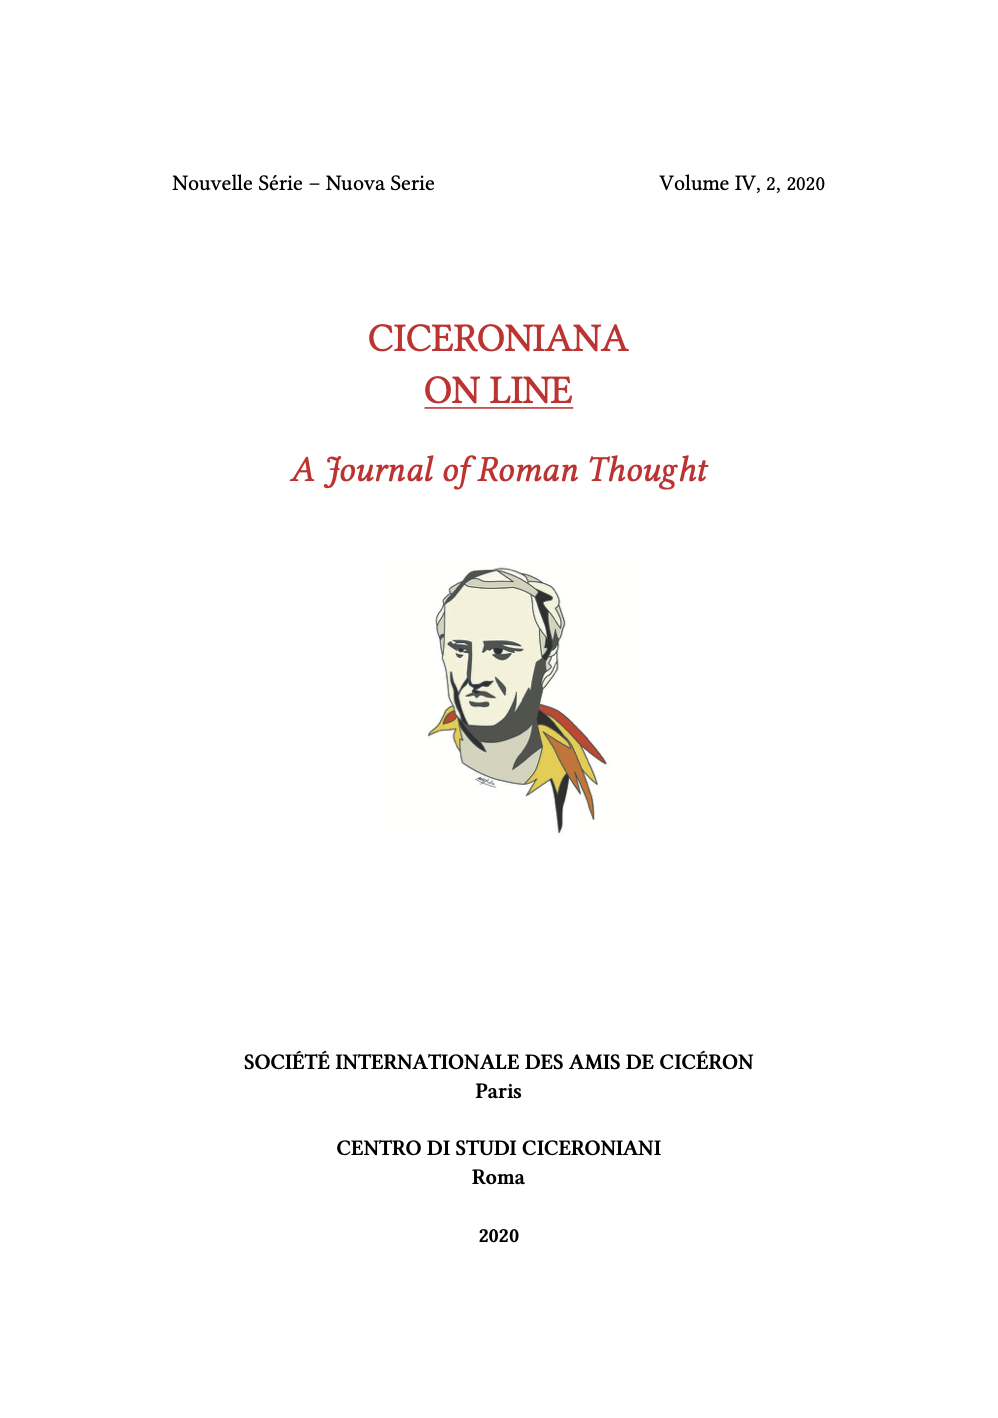 Book Cover: CICERONIANA ON LINE: Cicero, Society, and the Idea of artes liberales